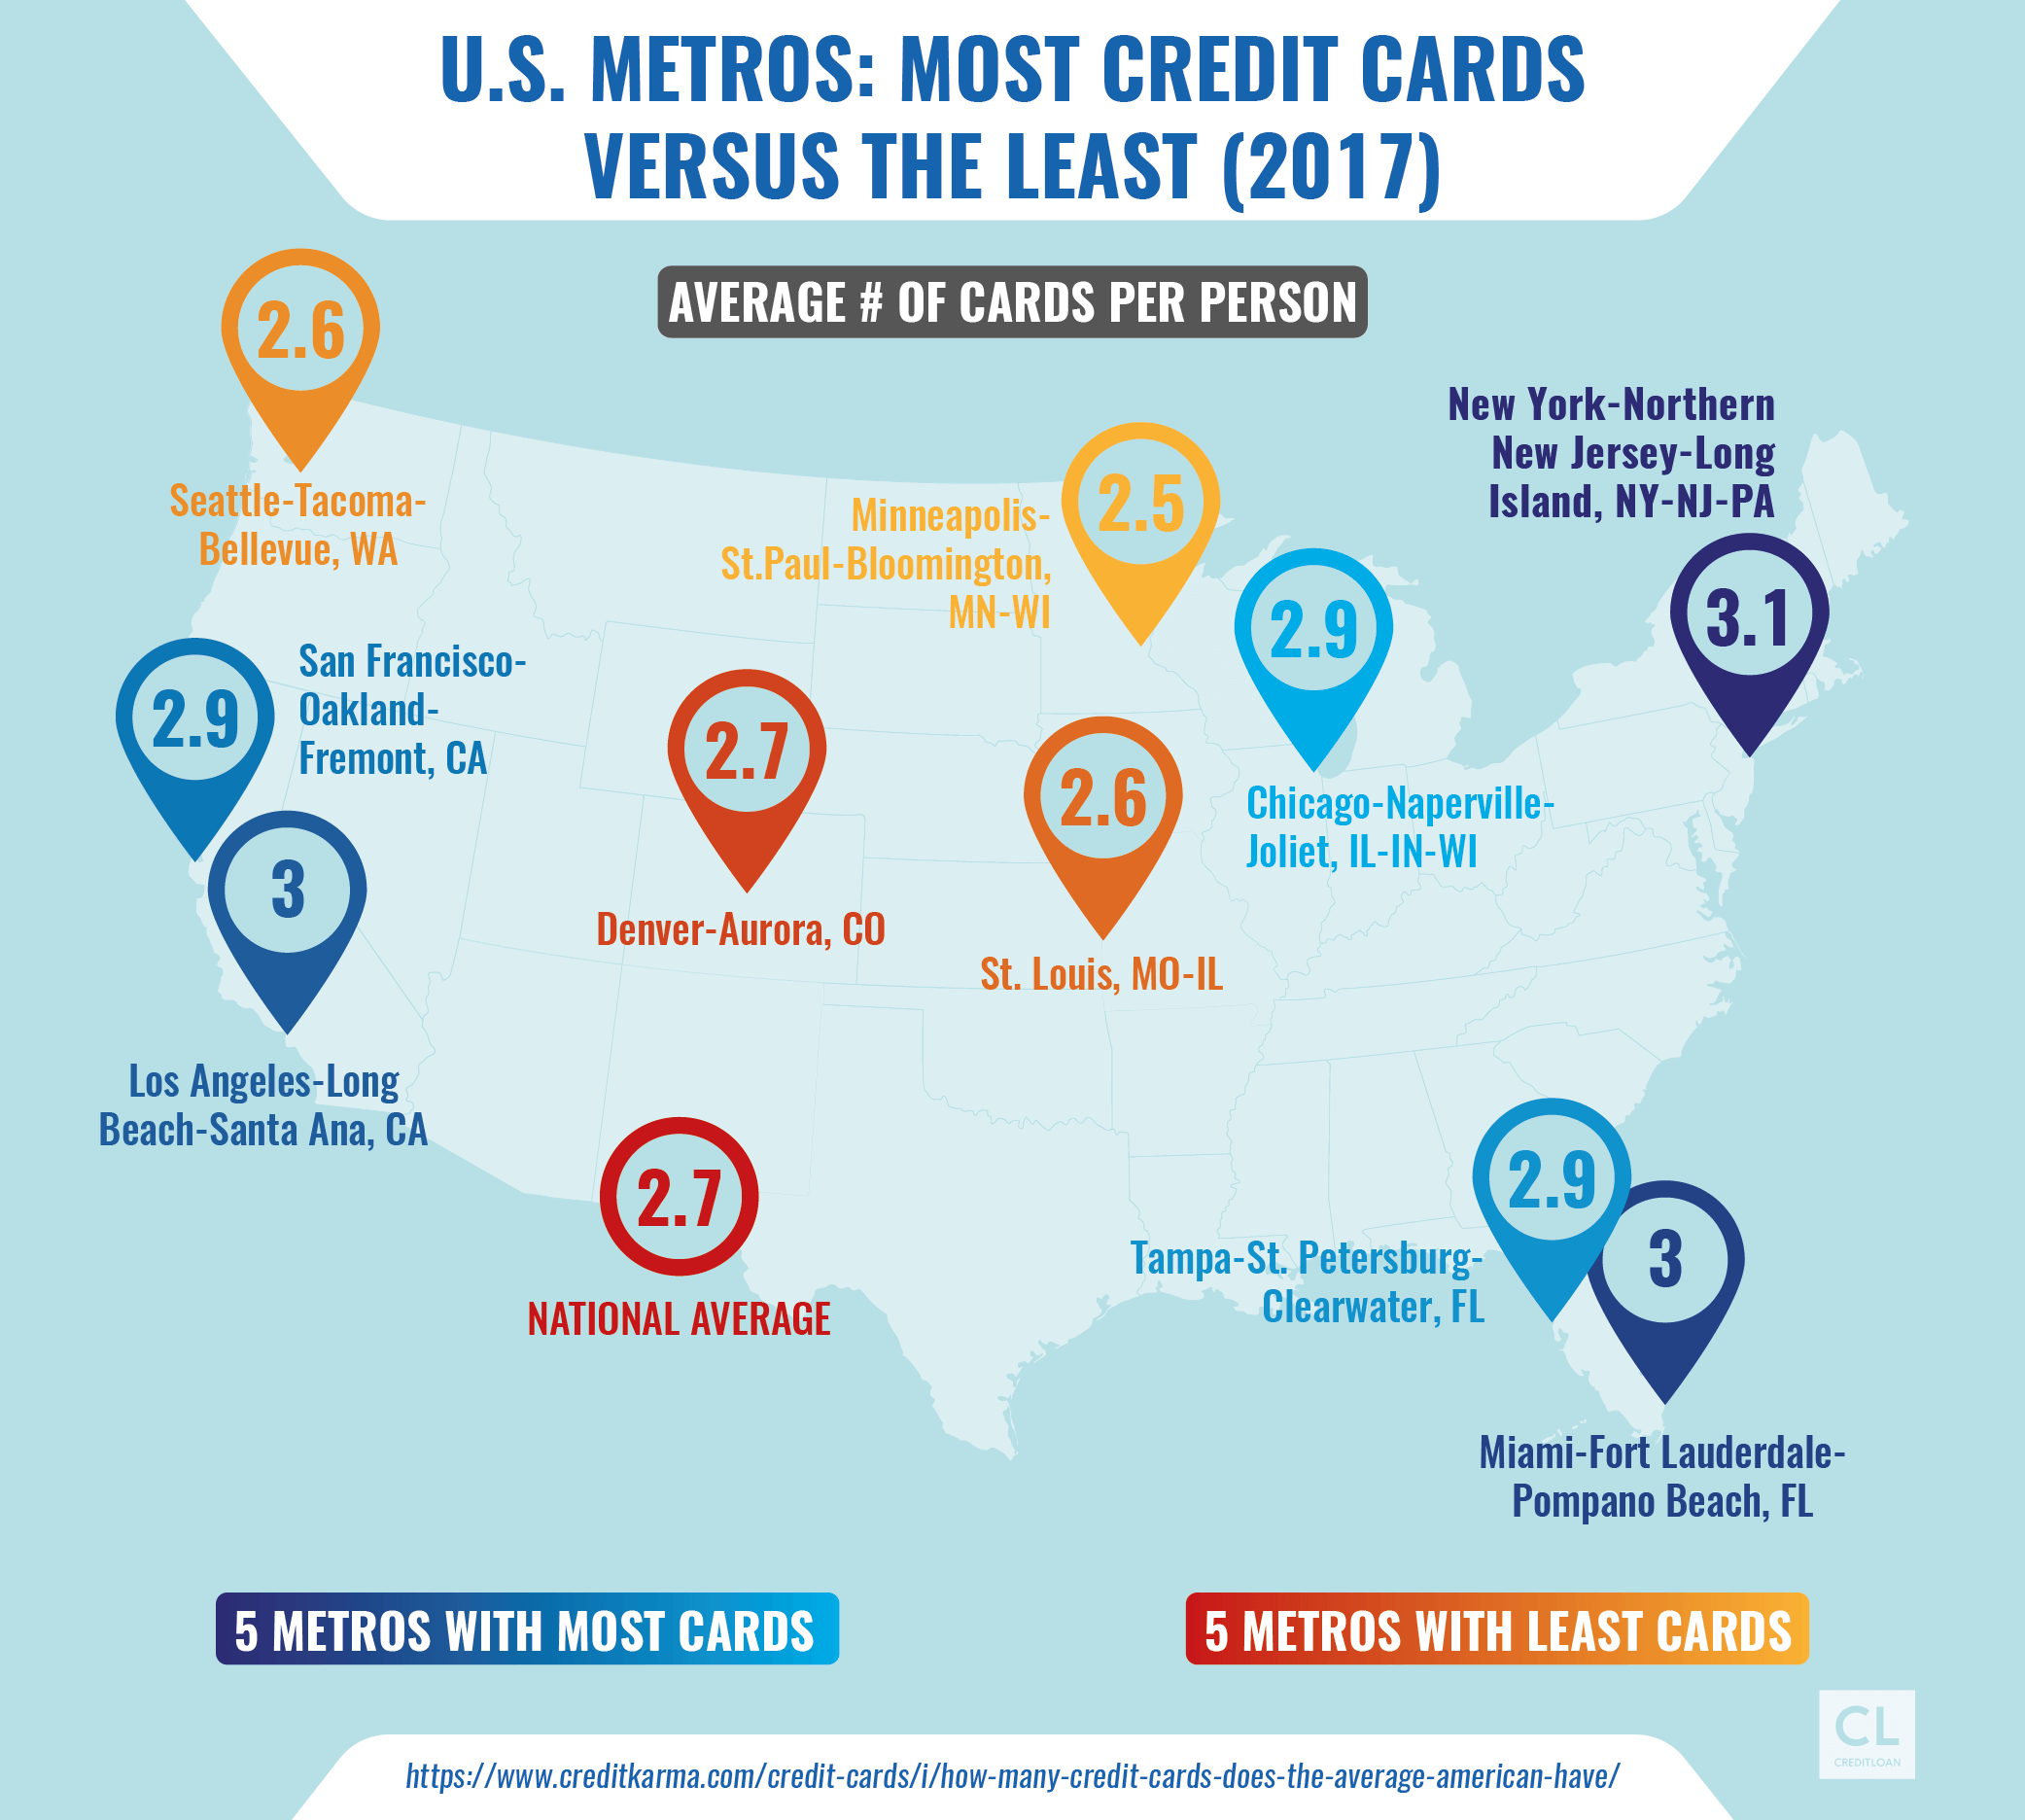 U.S. Metros: Most Credit Cards vs the Least 2017